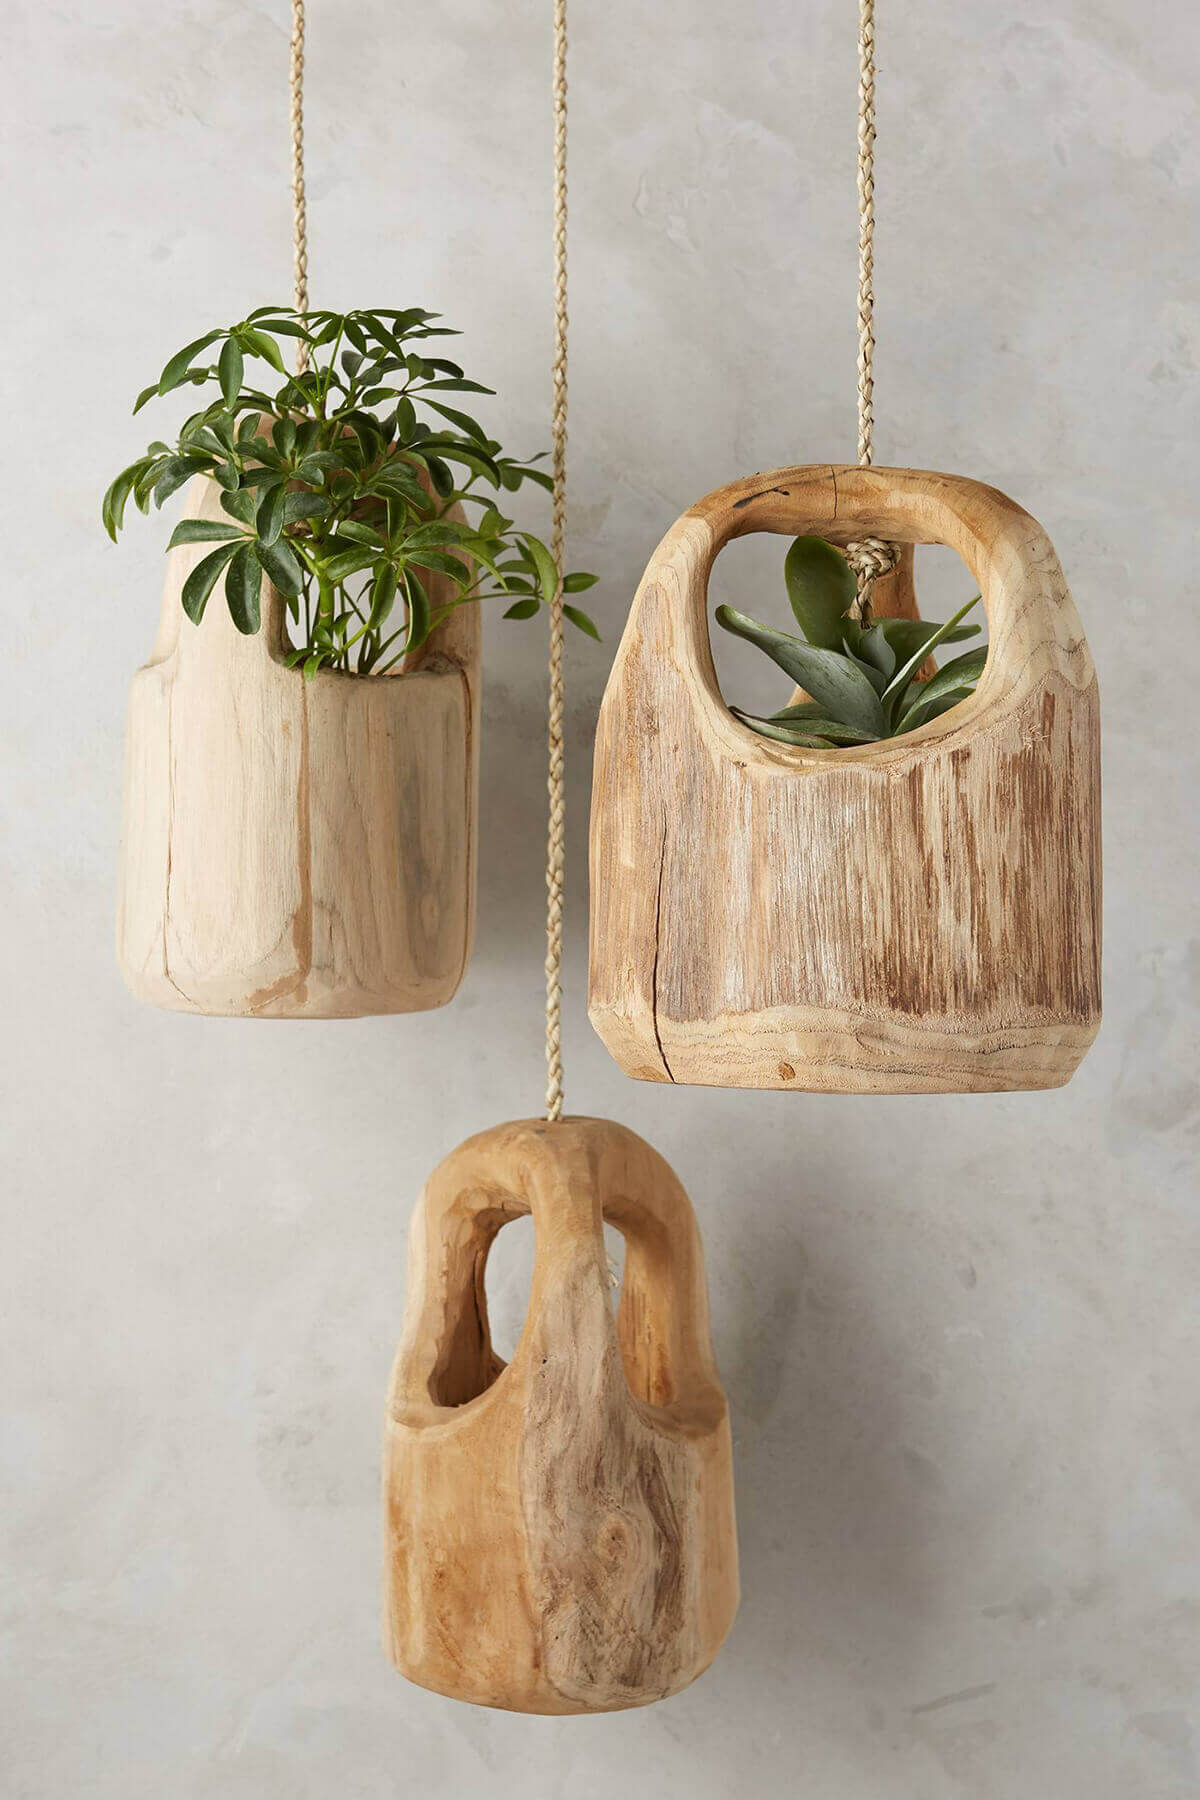 Hanging Planters Part - 33: Rustic Carved Wooden Hanging Planters